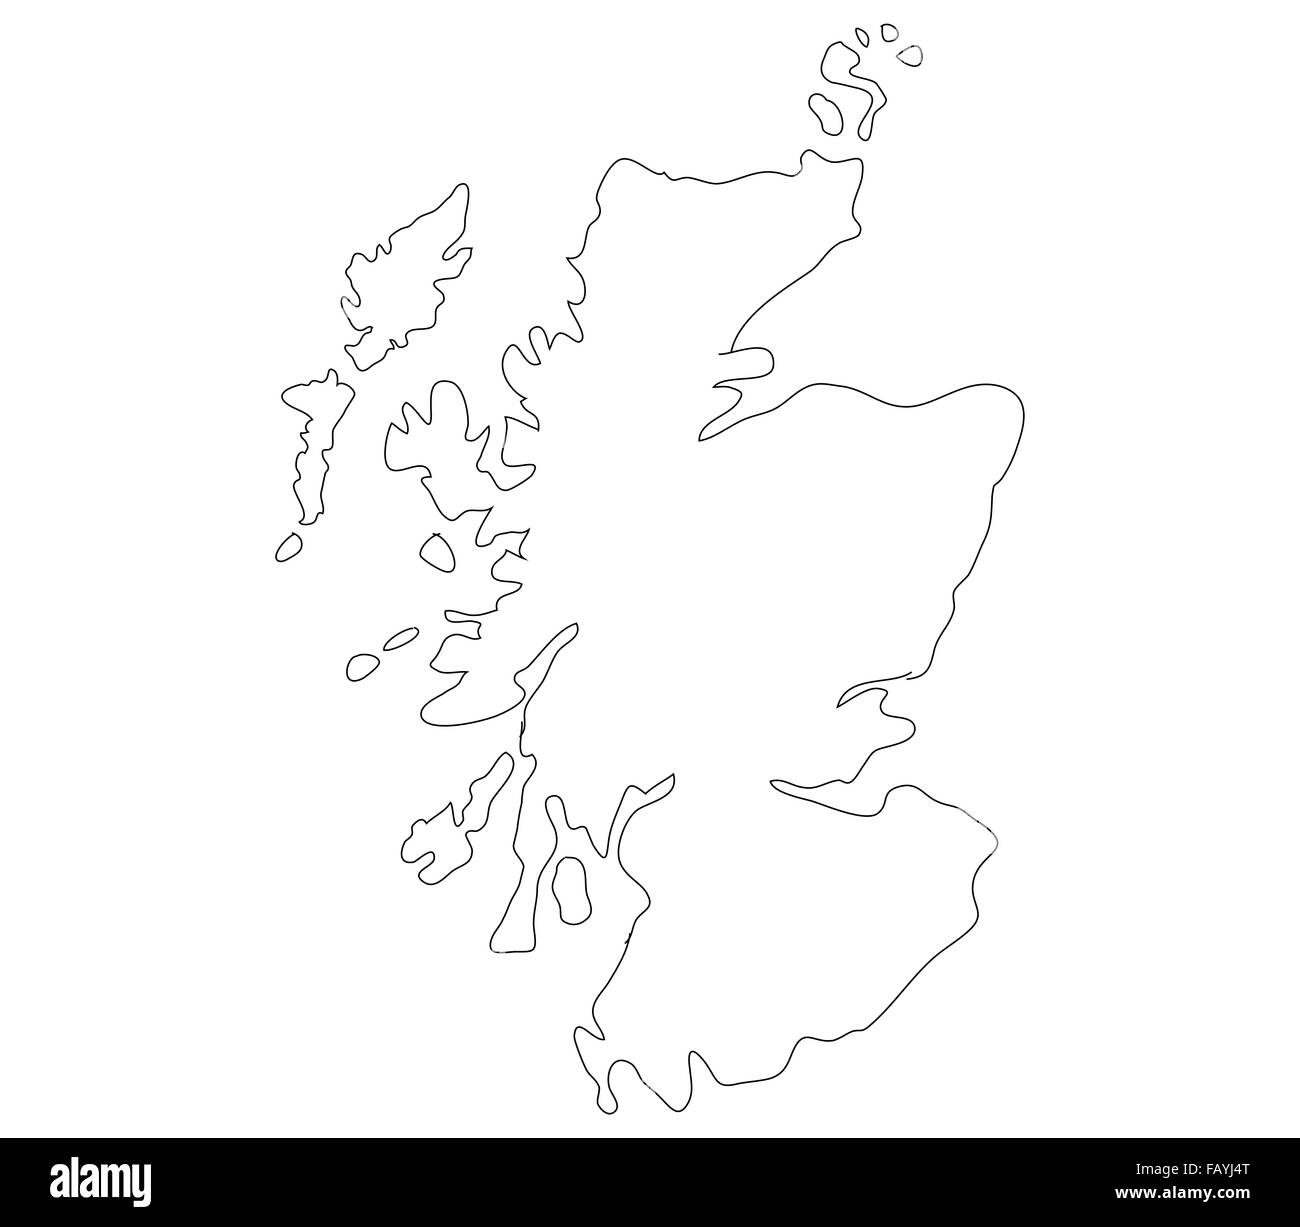 Scotland map on a white background - Stock Image